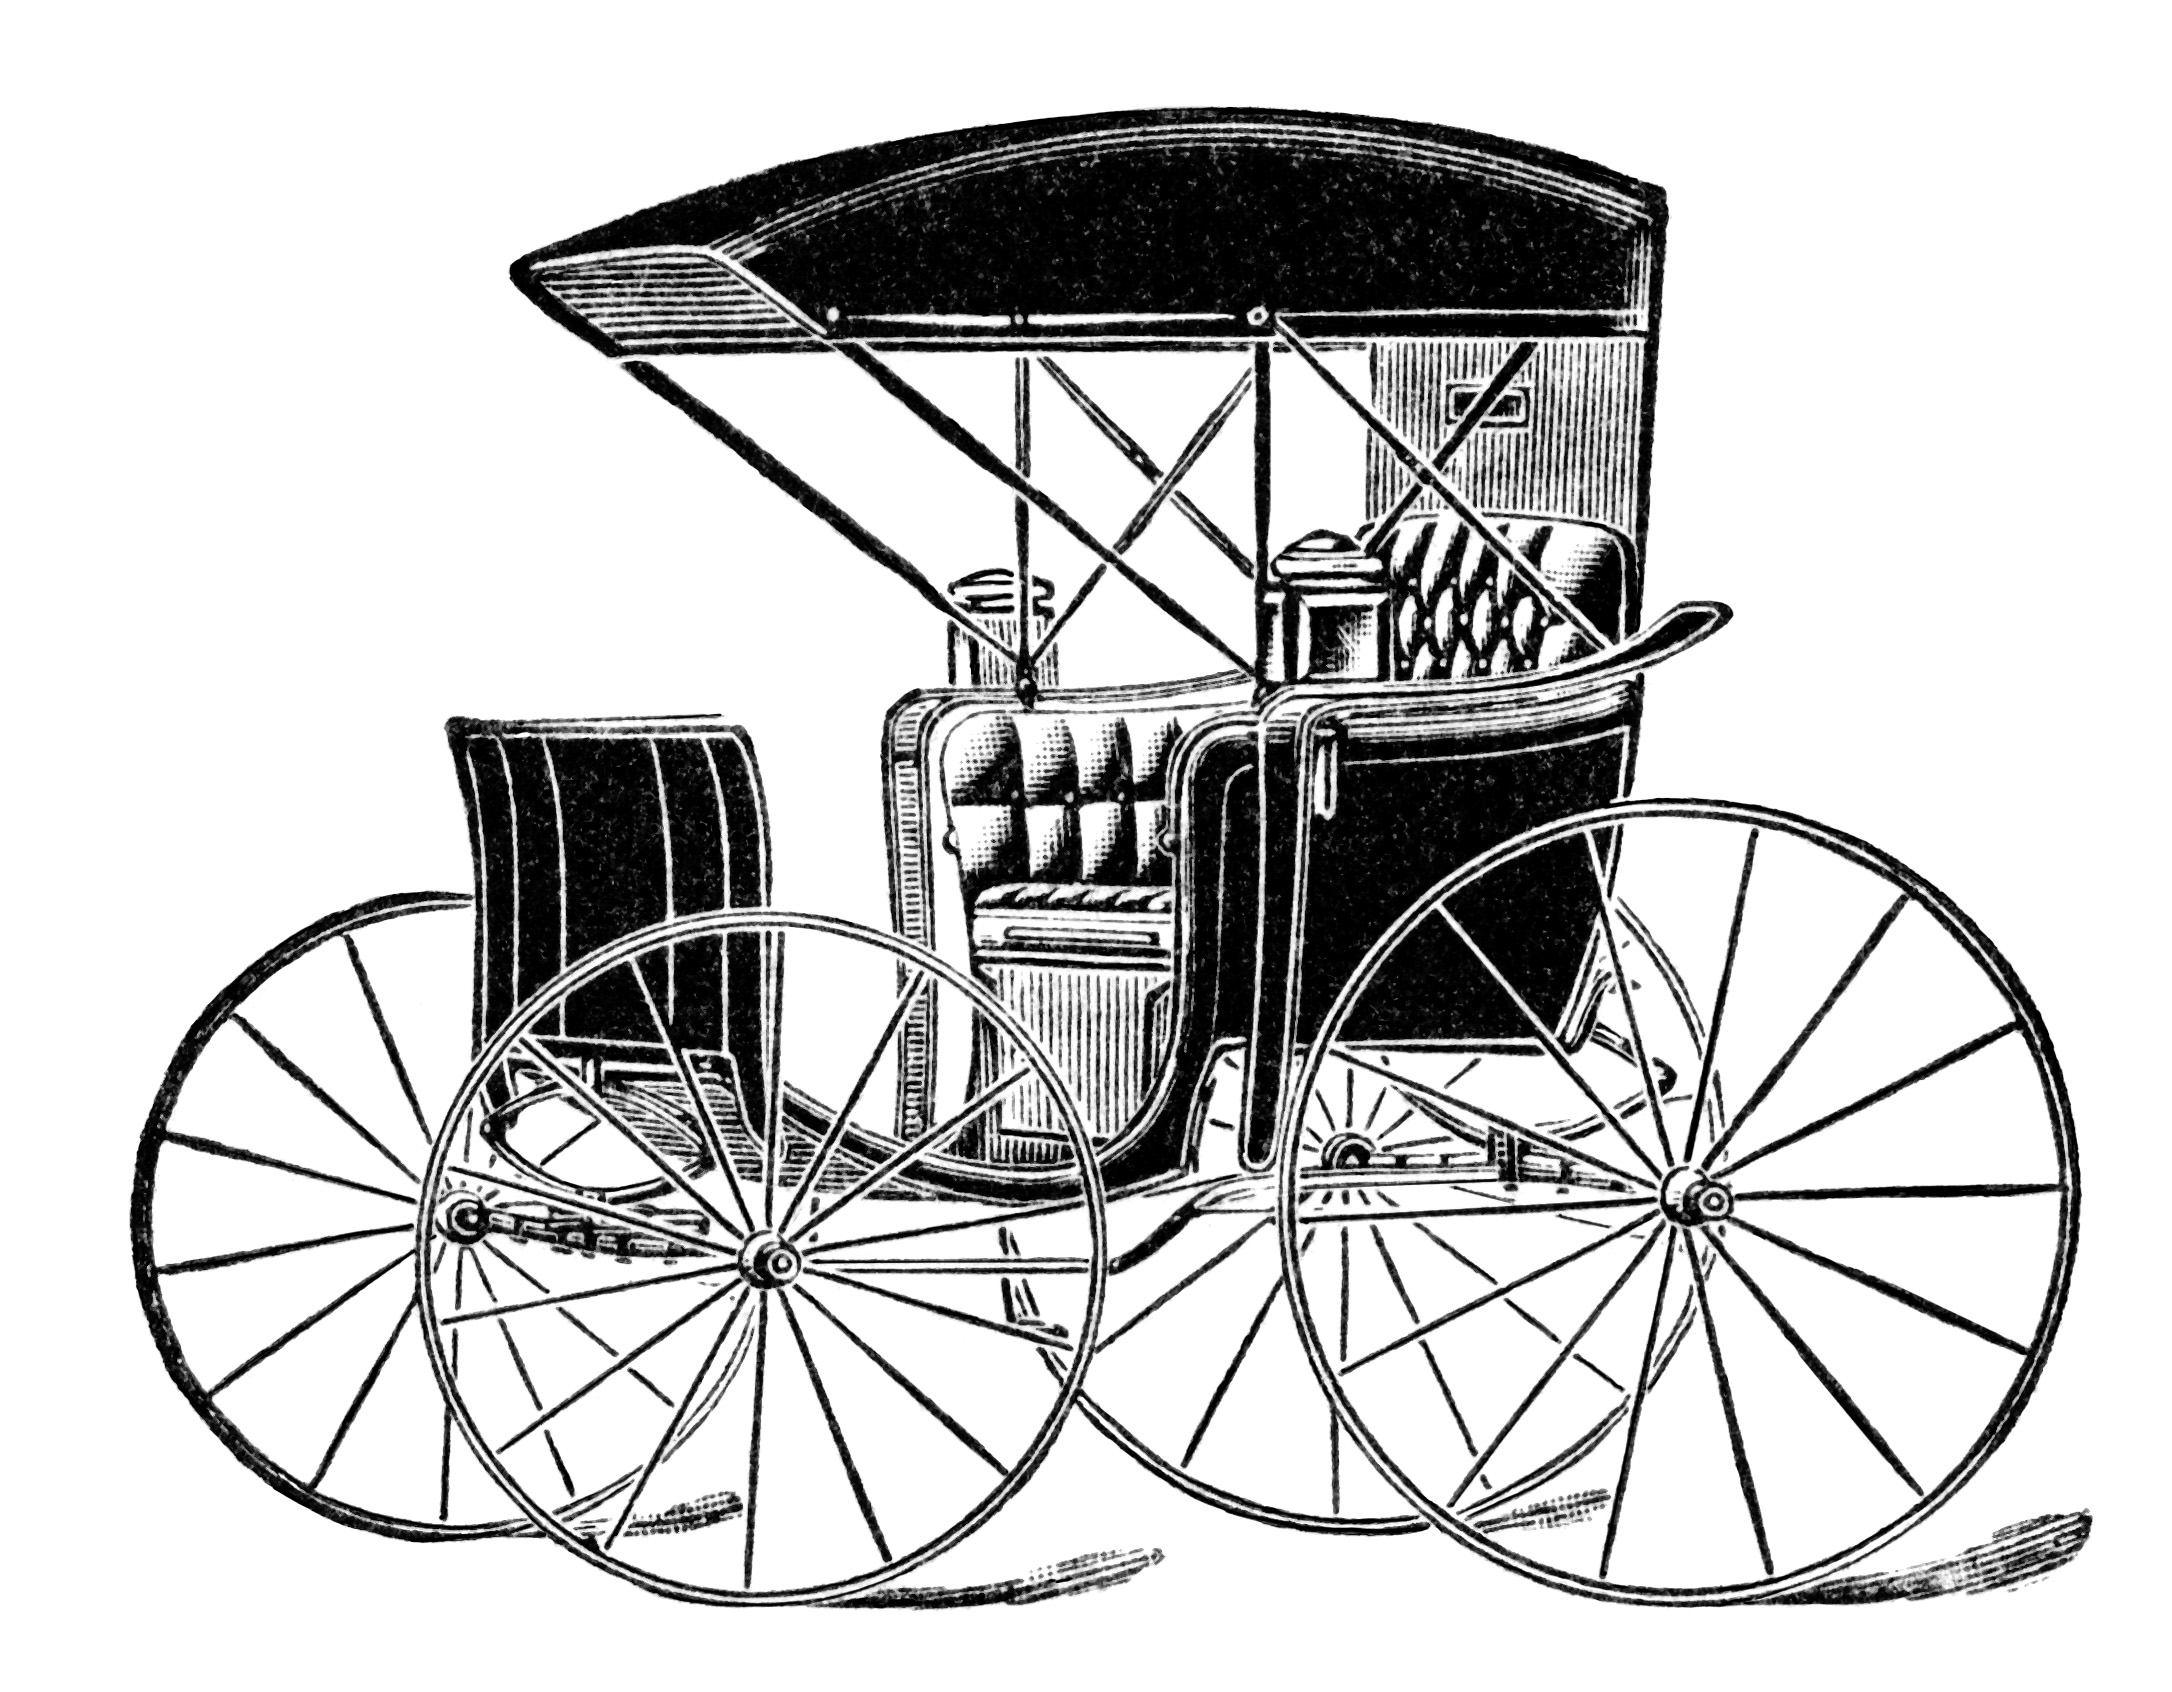 Classic Car clipart automobile Transportation white horse and carriage